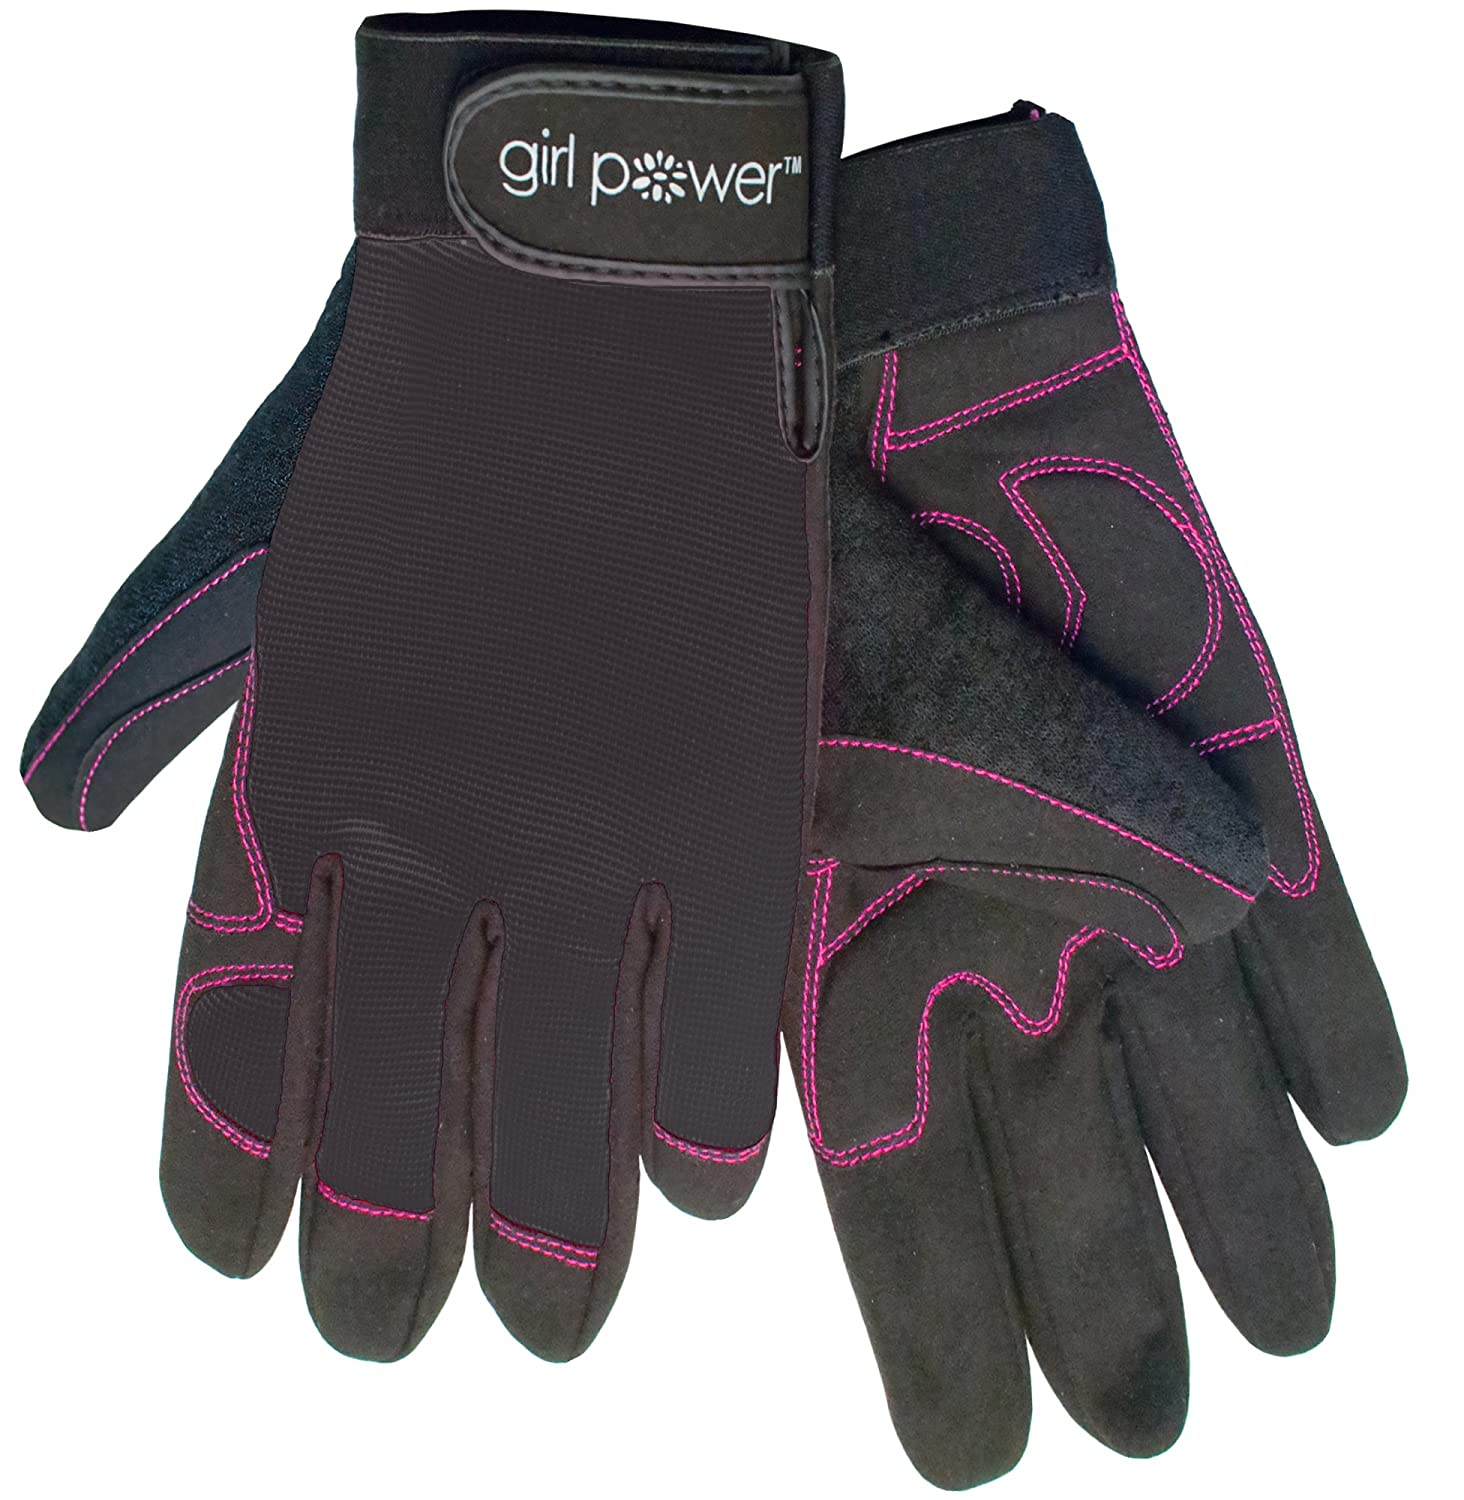 """ERB Safety Products 28862 MGP 100 Girl Power Mechanics Glove, 10"""" Height, 1"""" Wide, 5"""" Length, Nylon/Synthetic Leather, Small, Black"""